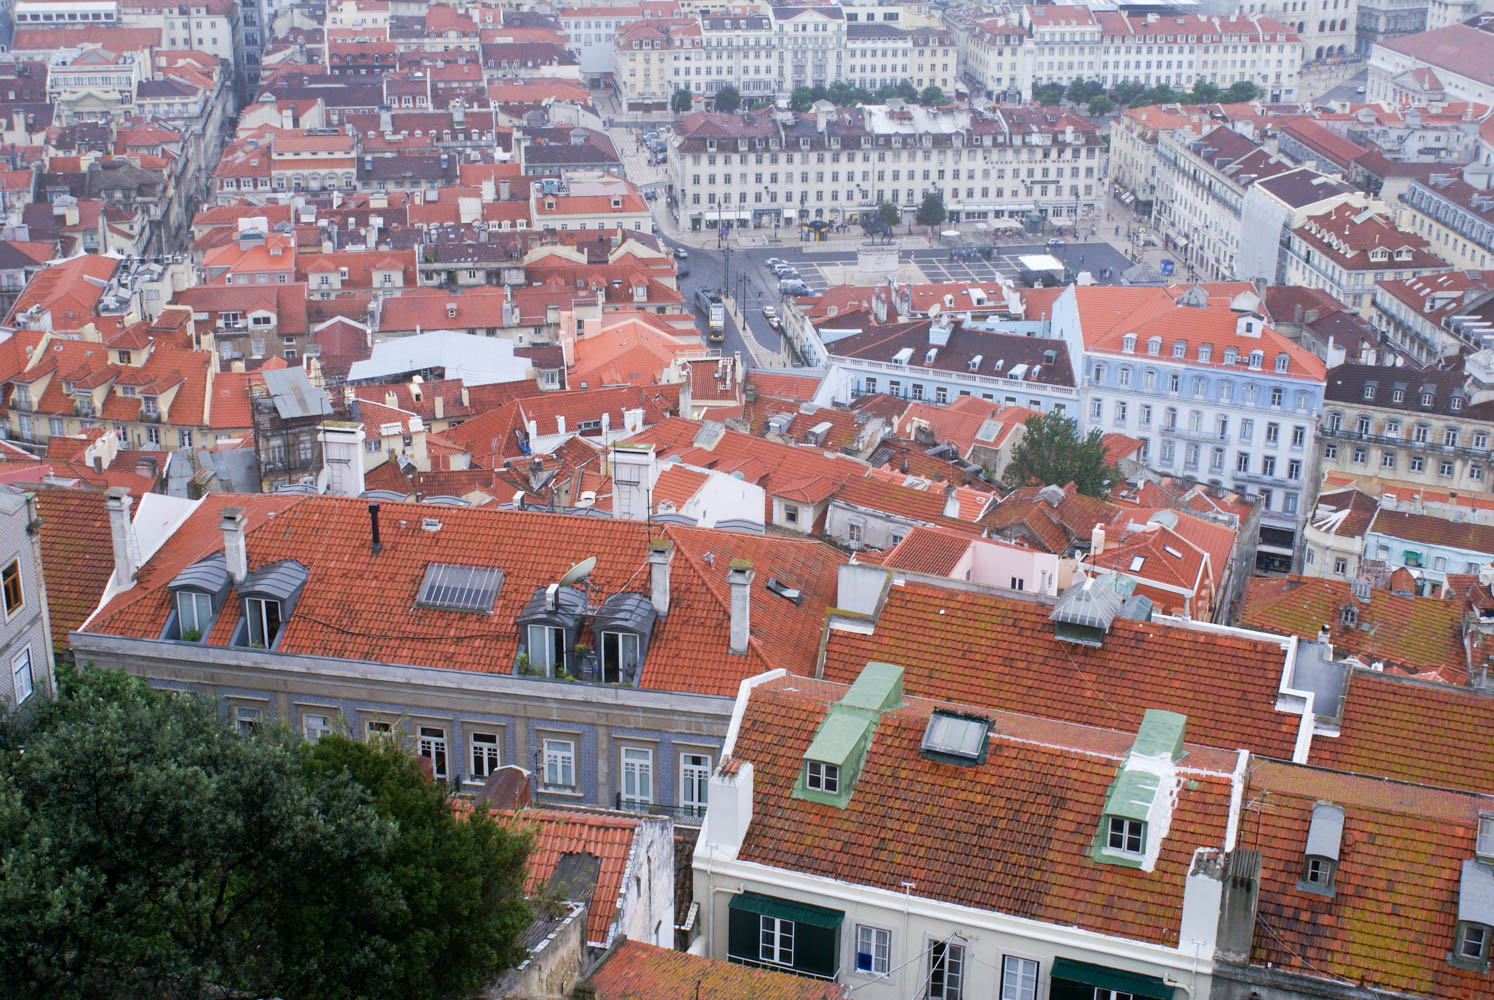 View of Lisbon from Castle of Sao Jorge